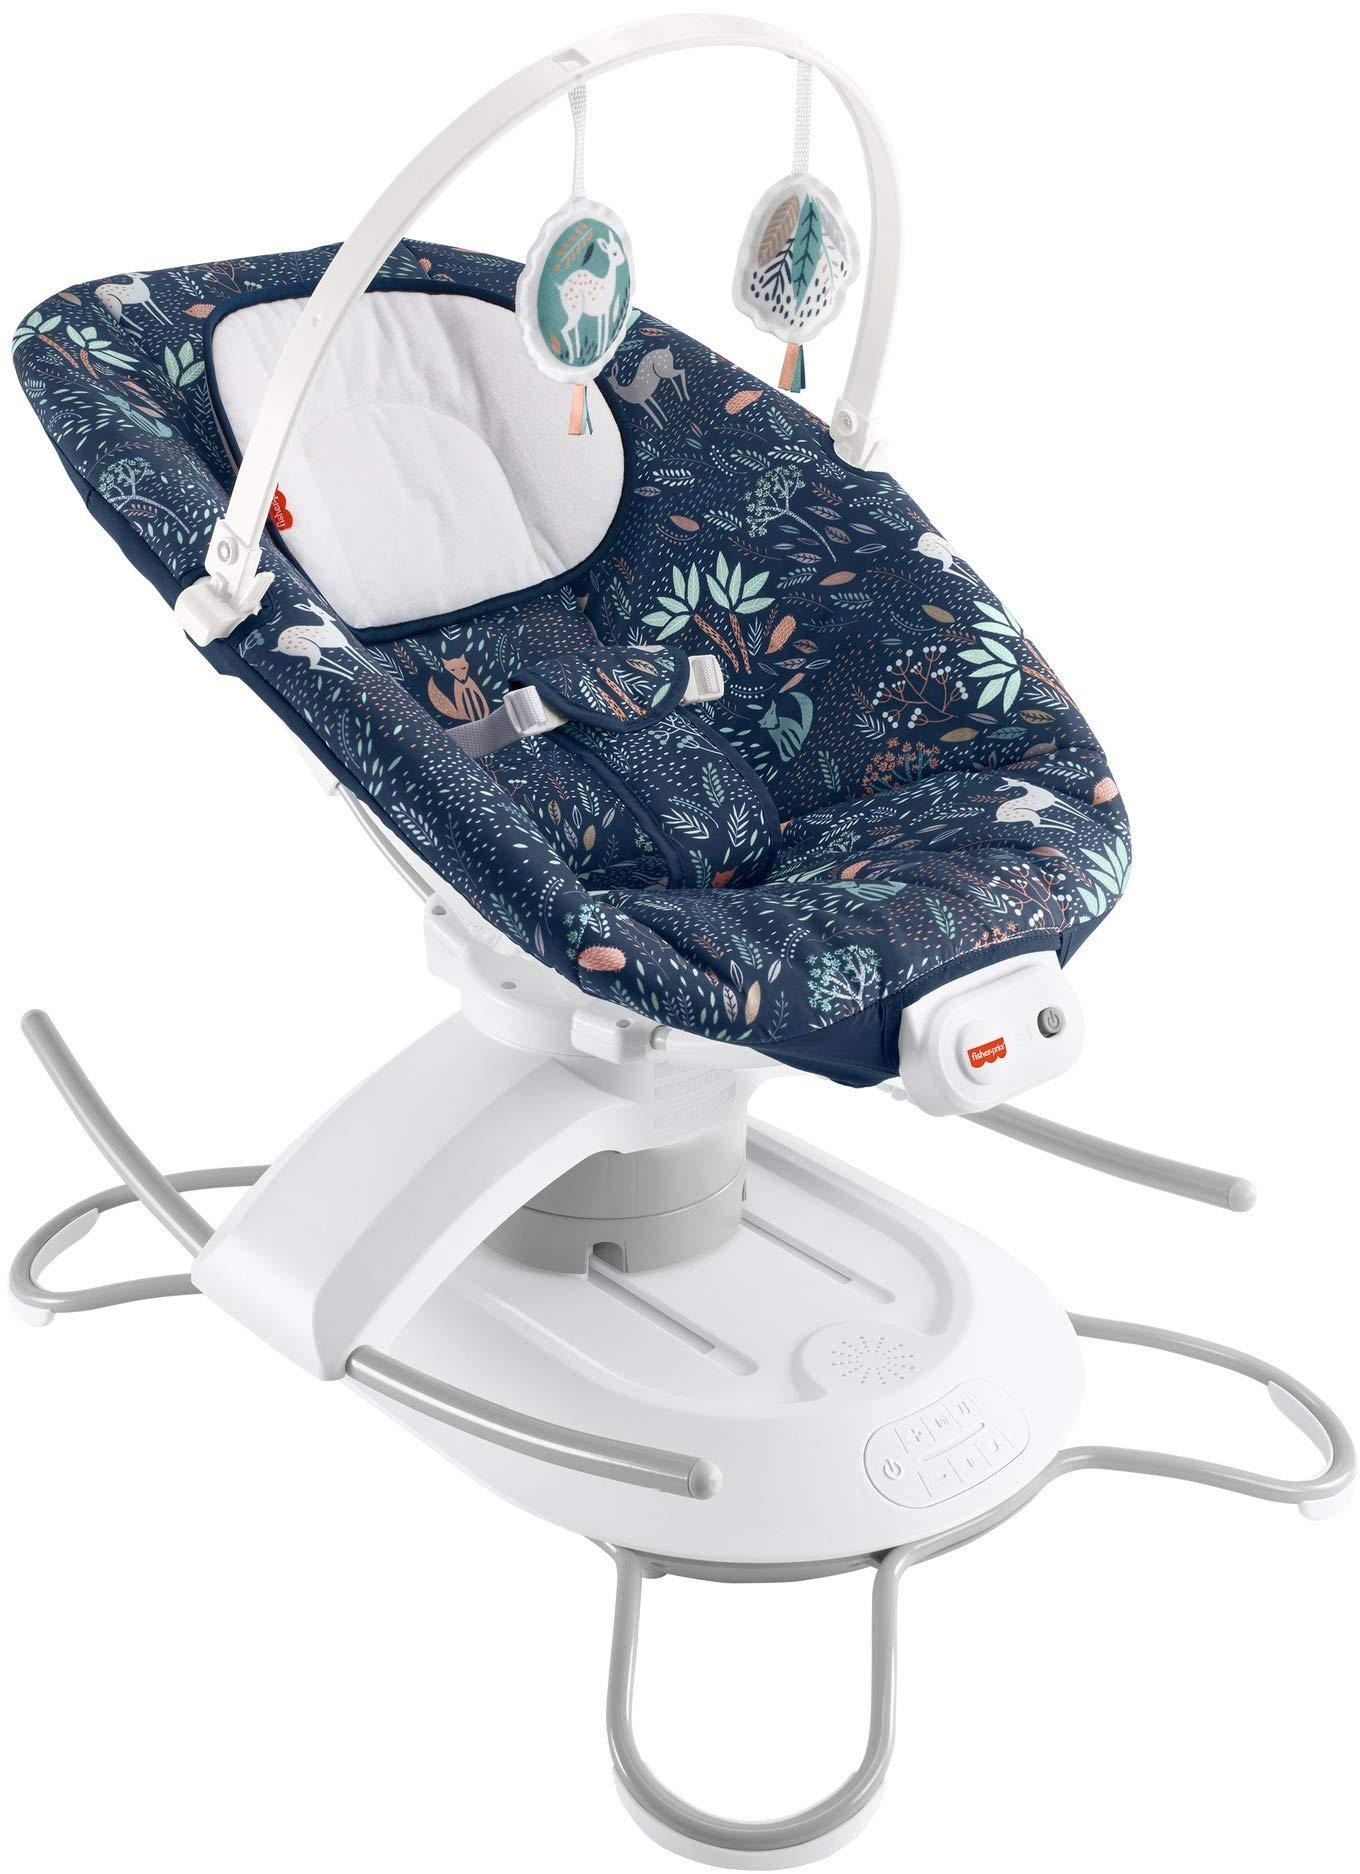 Fisher-Price 2-in-1 Deluxe Soothe 'n Play Glider, Moonlight Forest